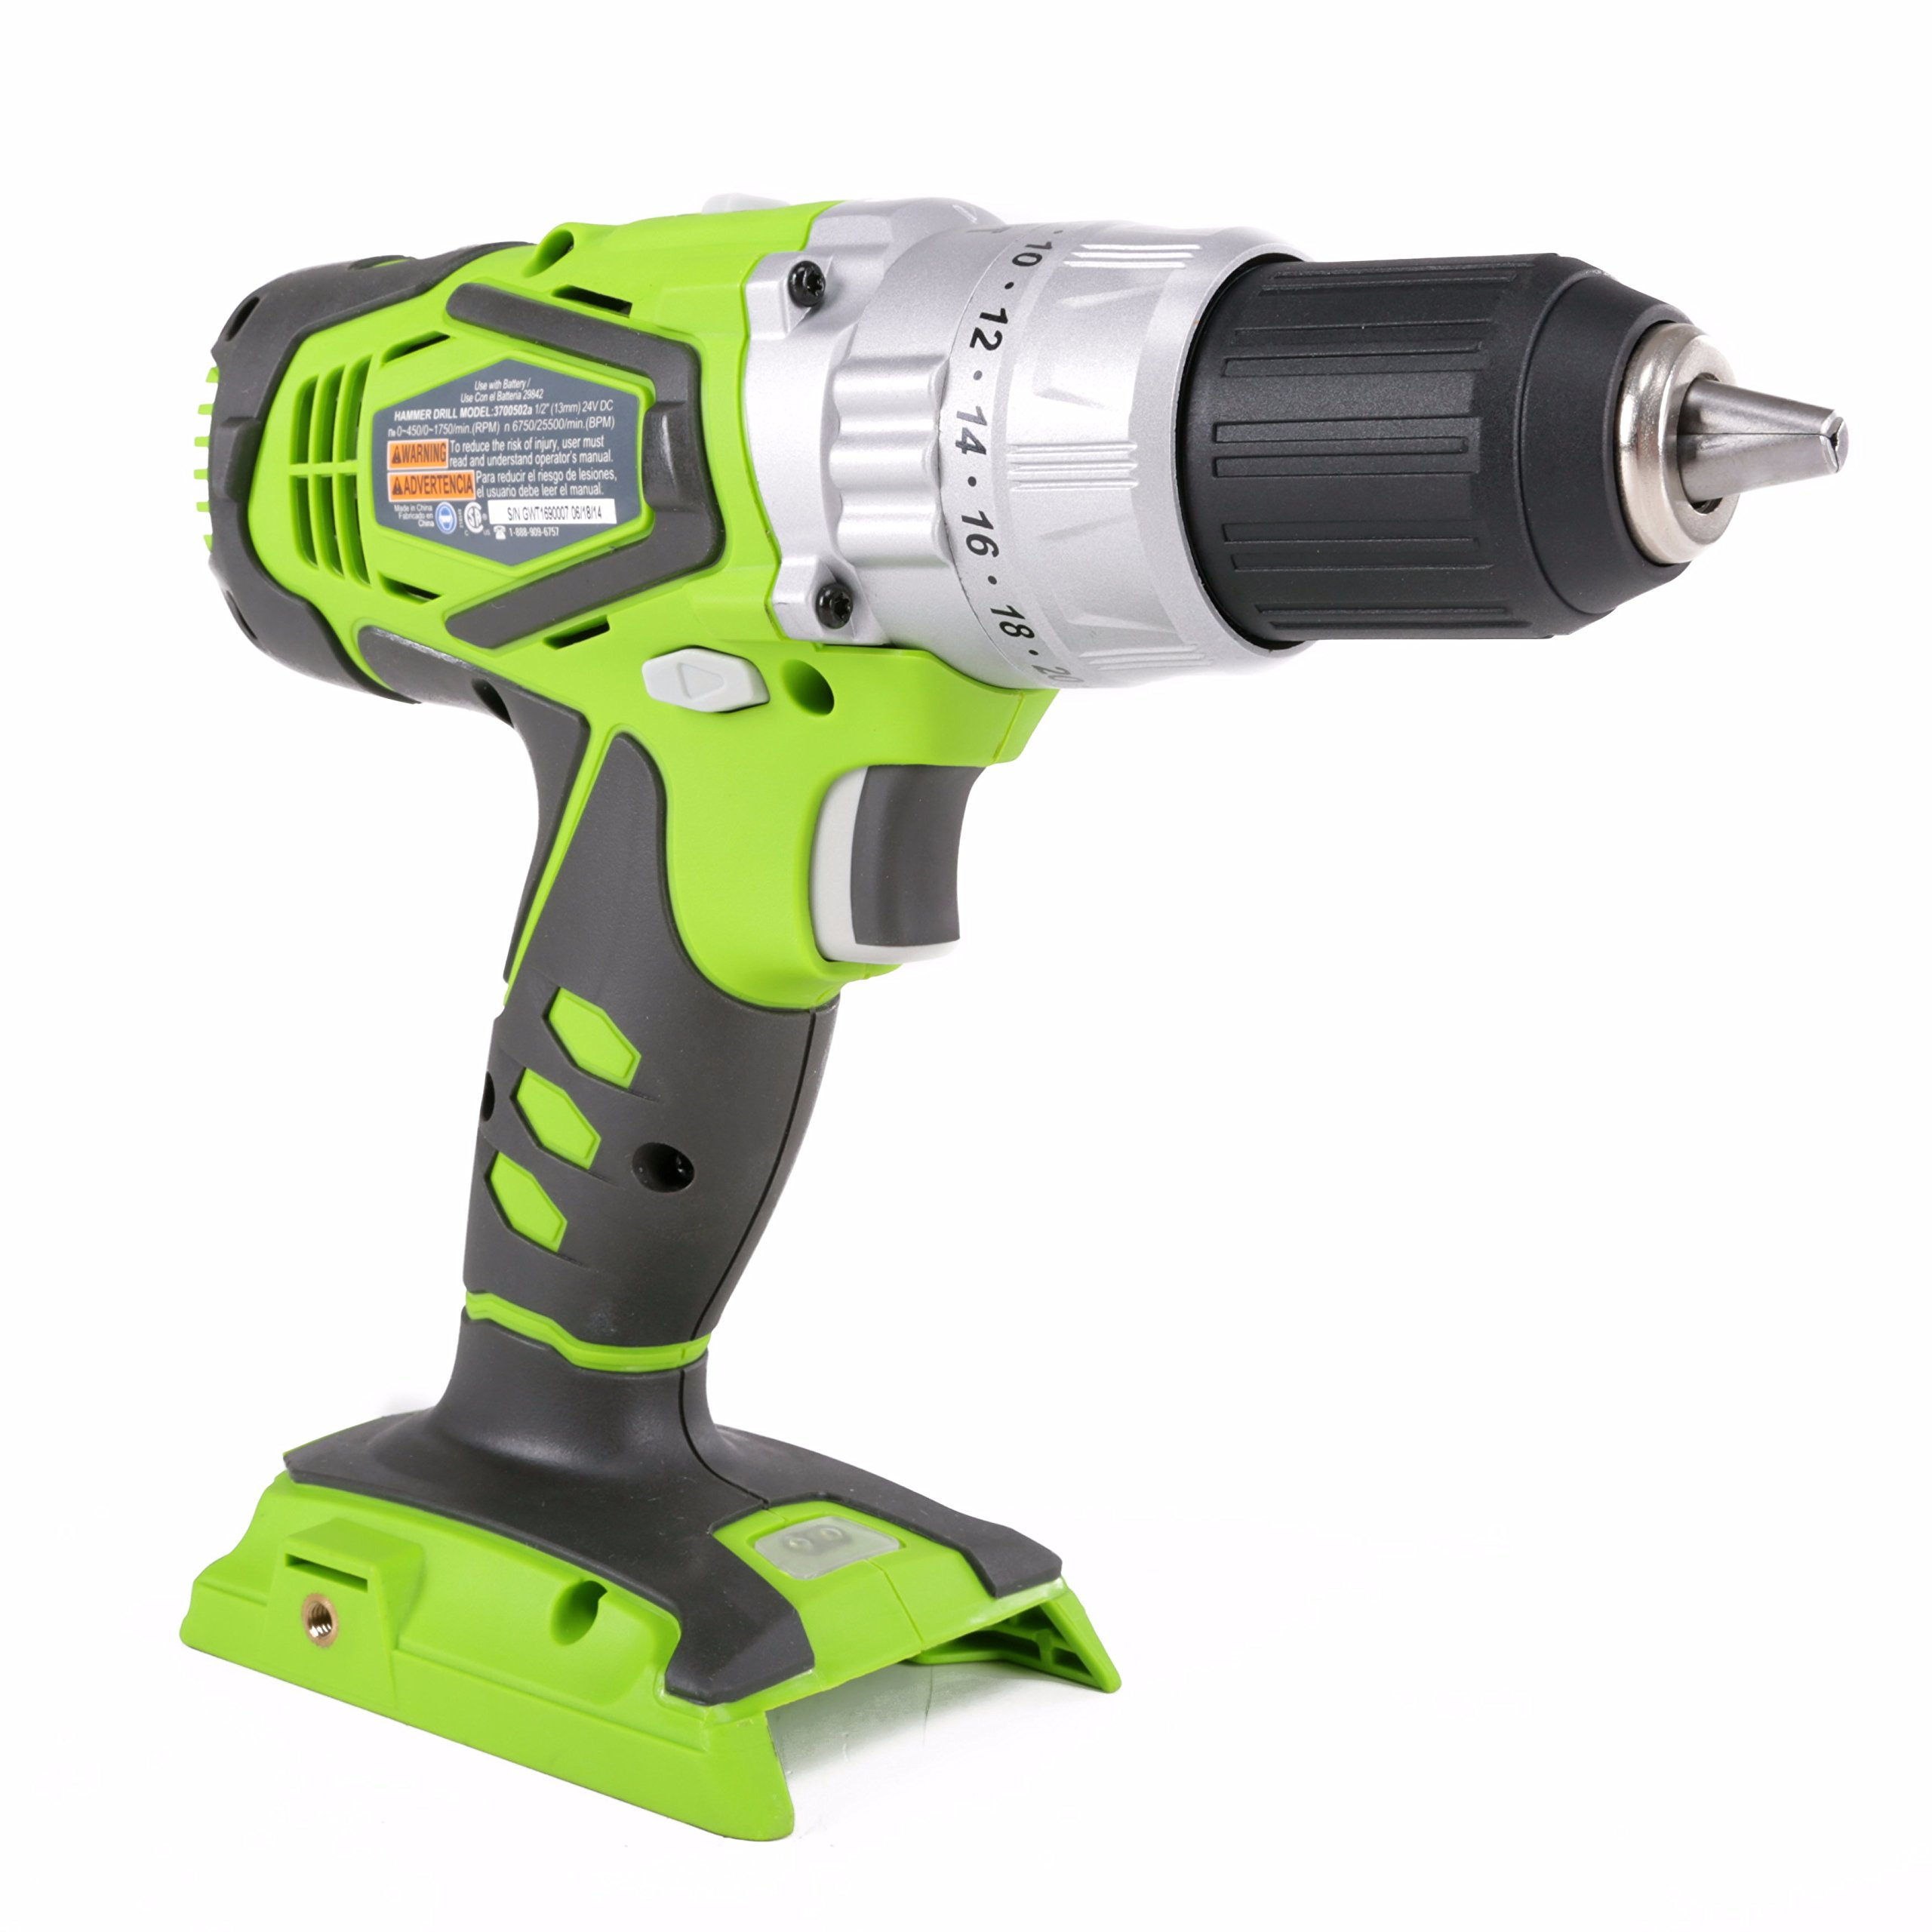 Greenworks 24V 2 speed hammer drill with 2-2.0ah battery and 1- charger by Greenworks (Image #2)